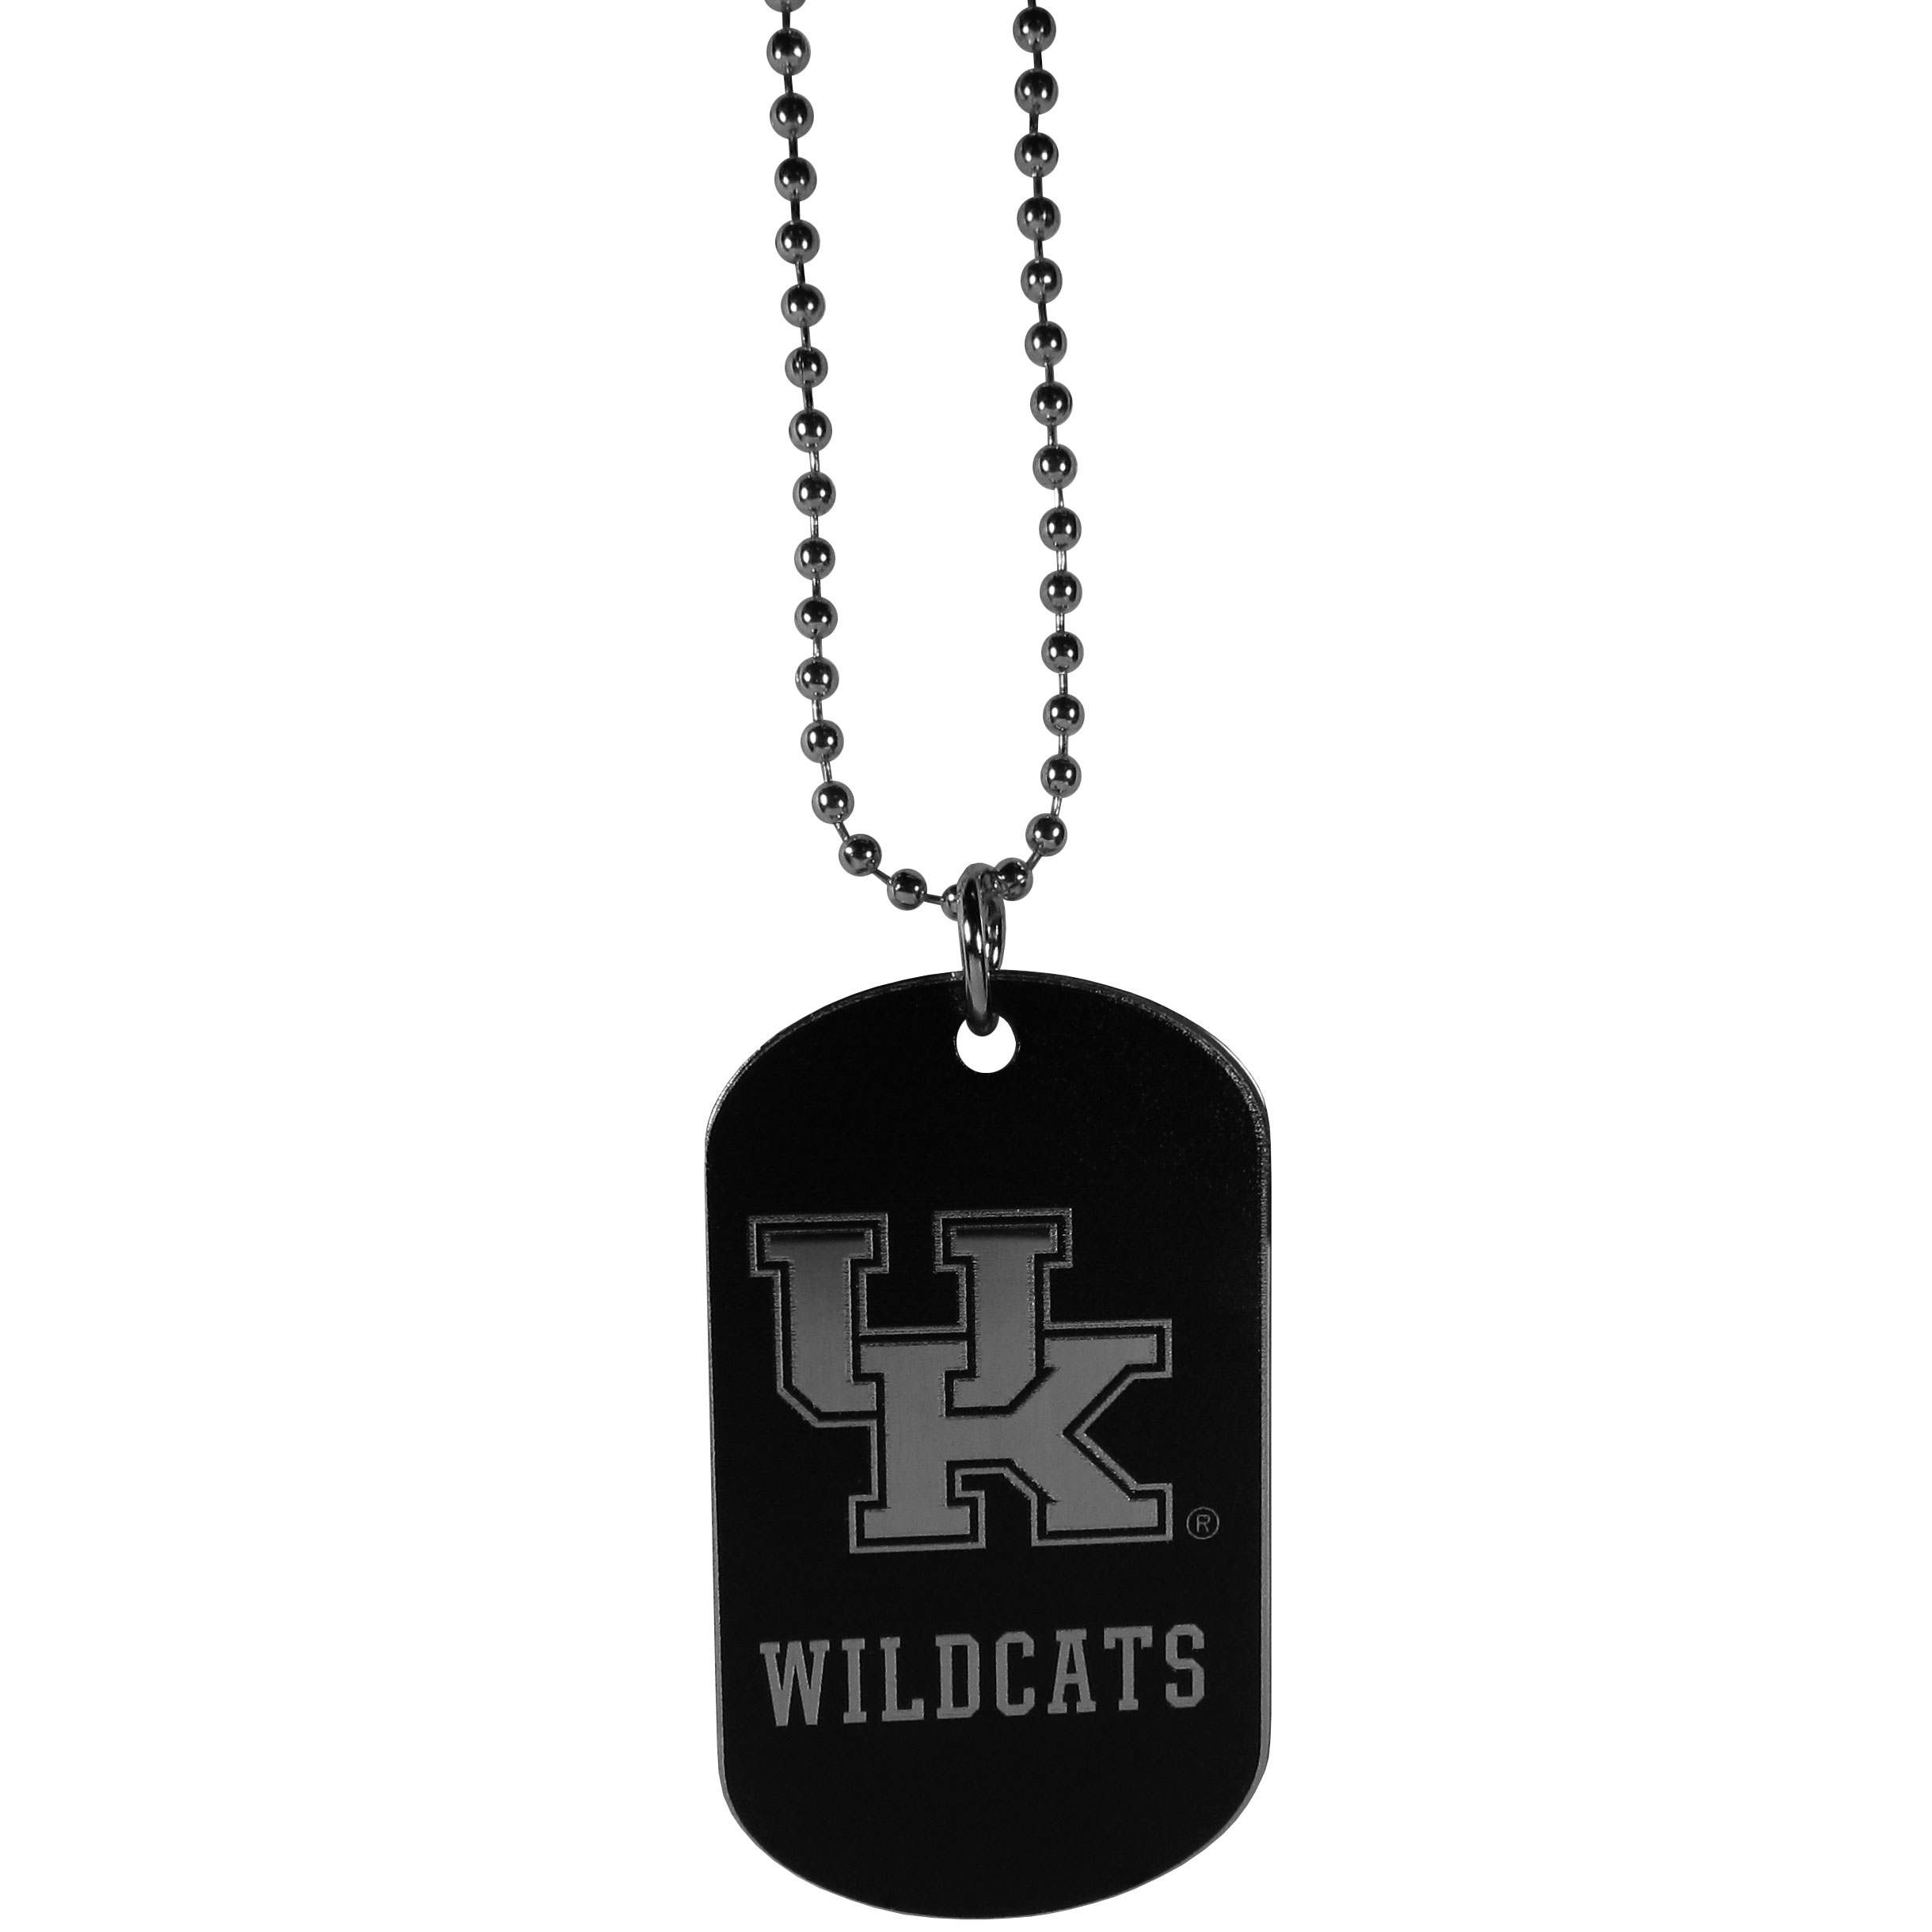 Kentucky Wildcats Chrome Tag Necklace - Dog tag necklaces are a fashion statement that is here to stay. The sporty version of the classic tag features a black printed over a high polish tag to create a bold and sporty look. The tag comes on a 26 inch ball chain with a ball and joint clasp. Any Kentucky Wildcats would be proud to wear this attractive fashion accessory.